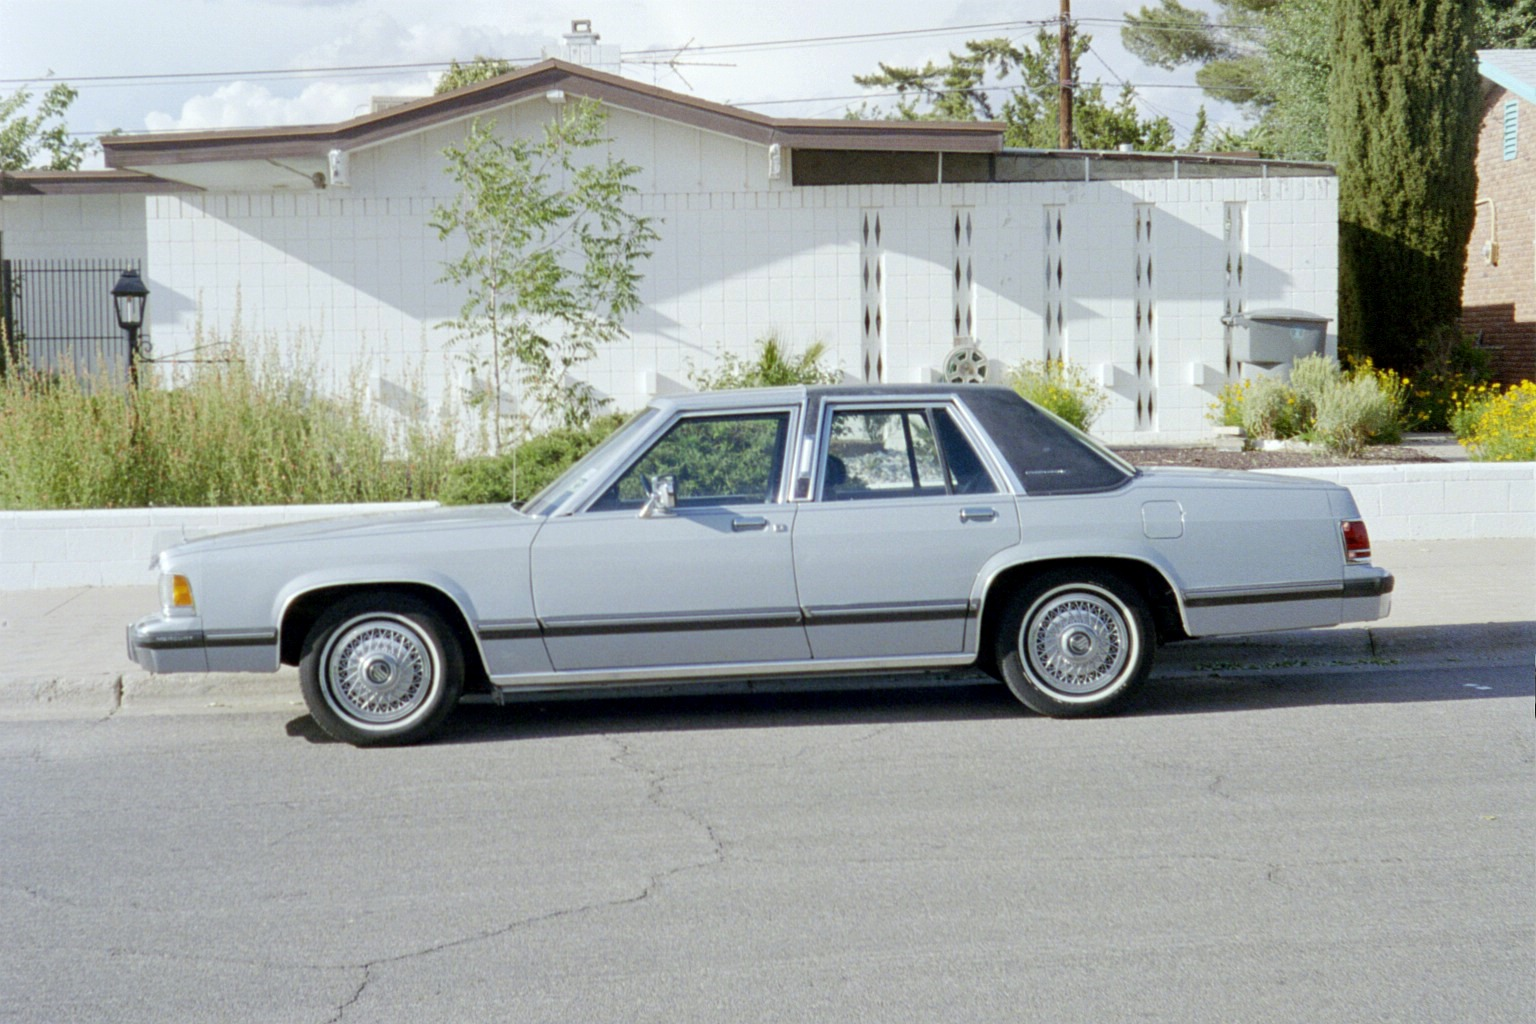 1988 mercury topaz with 1990 Mercury Grand Marquis Pictures C2839 Pi9342253 on No place  by Monochrome Clown as well 1990 Mercury COLOR CHART Chip Paint S le Brochure 201663252888 further File 91 95 Ford Taurus sedan together with Mercury Mystique 2 0 1999 Specs And Images additionally Fuel Pump Relay Tests 1.